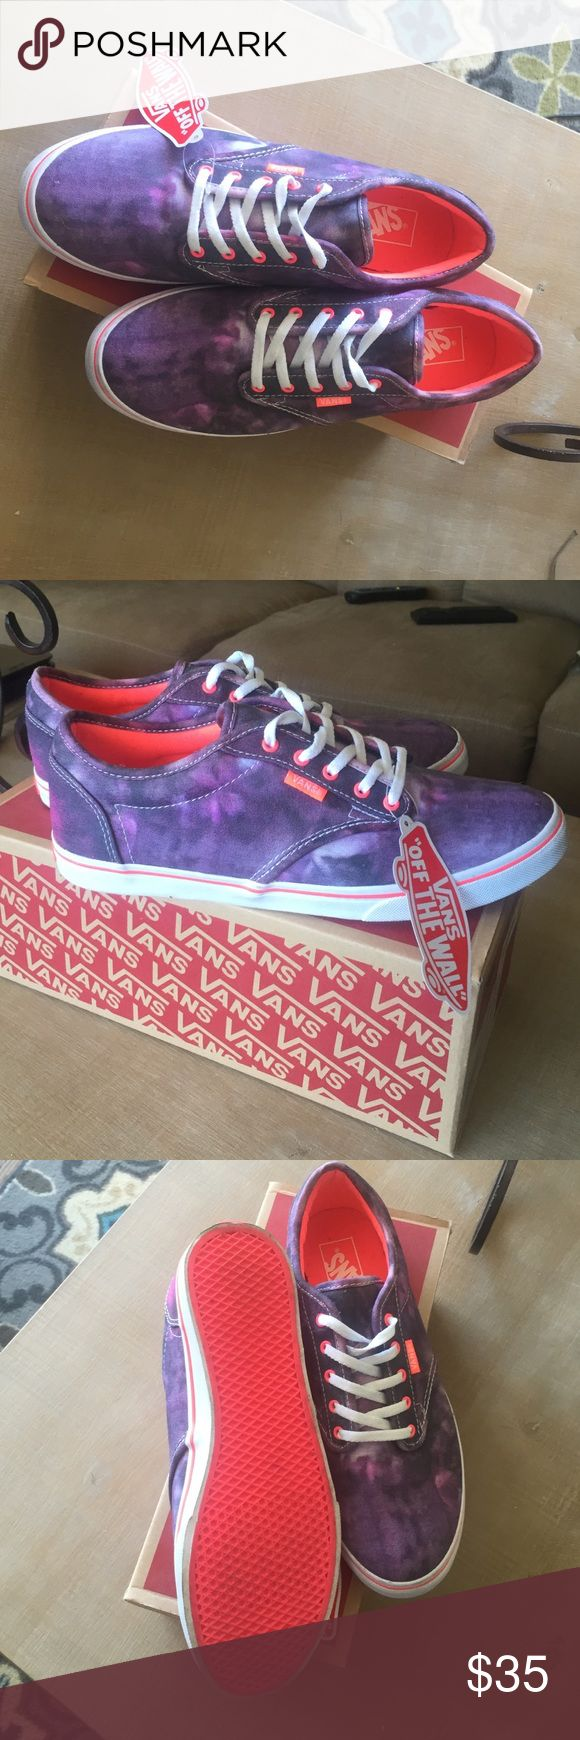 Atwood Low Festival Off White / Neon Vans Perfect condition, only worn once! Awesome purple Galaxy coloring! Vans Shoes Sneakers